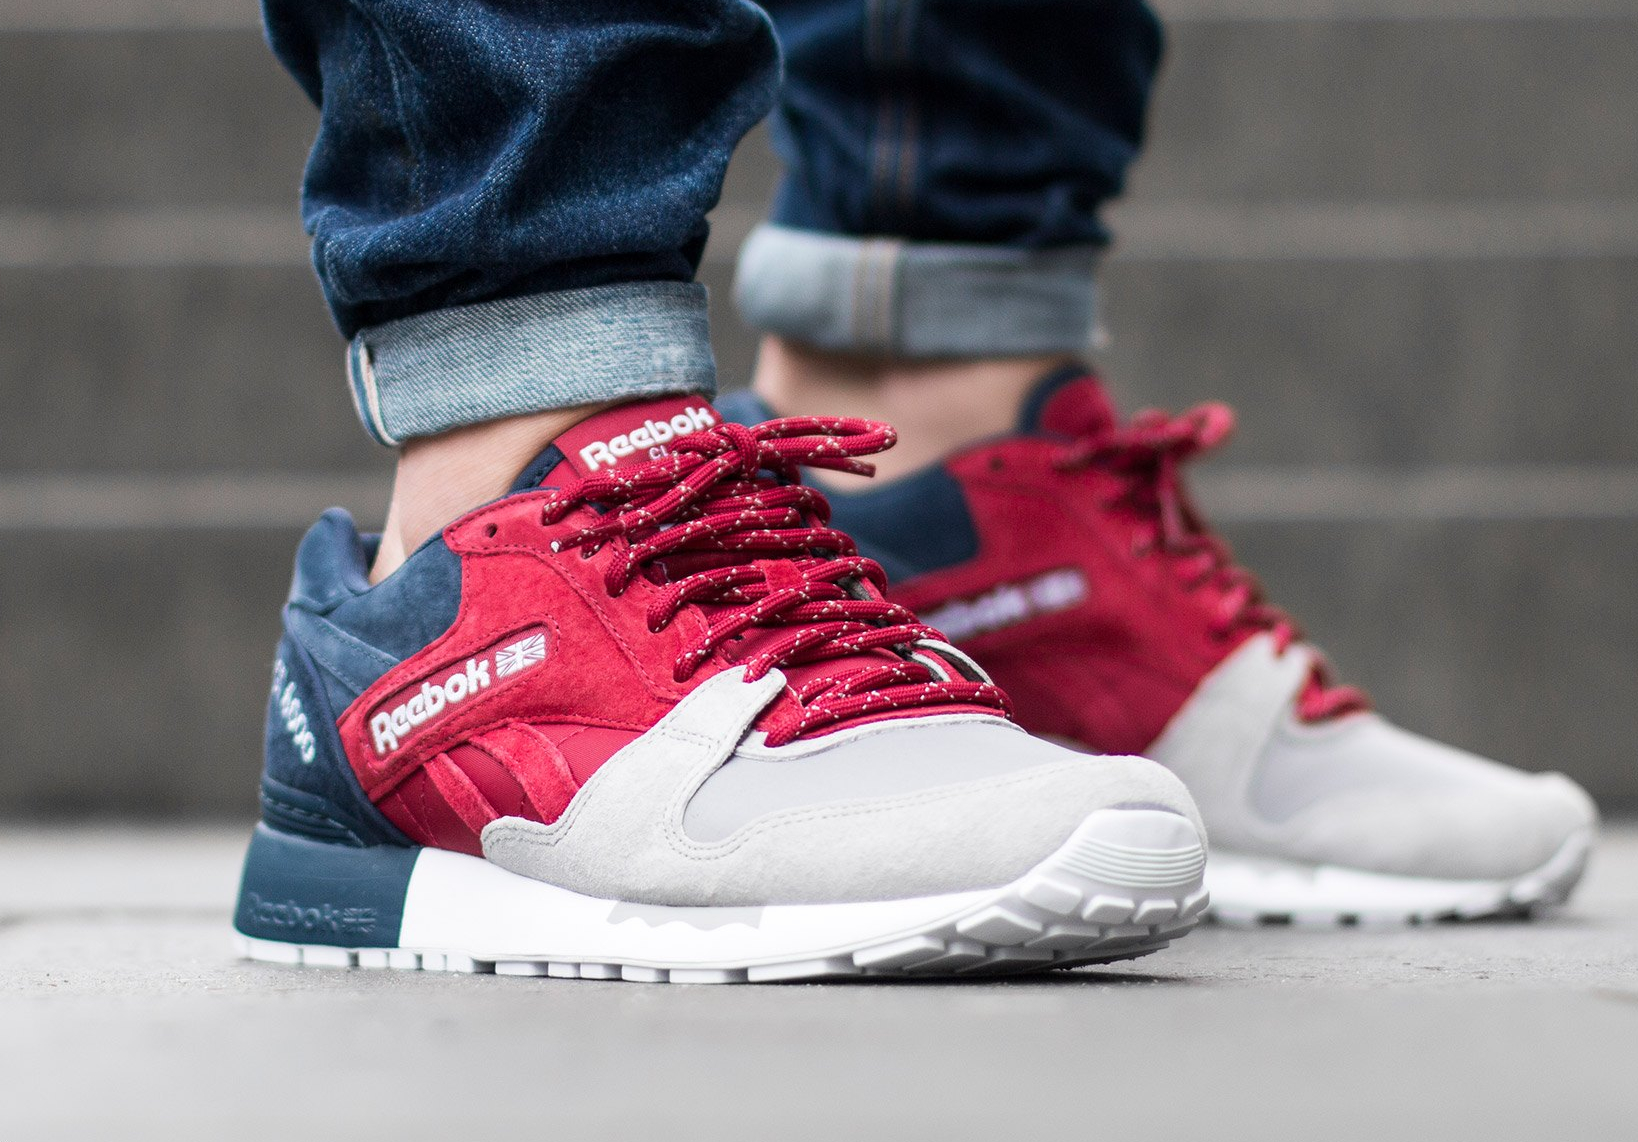 Chaussure Reebok GL 6000 SNE Cranberry Red (5)